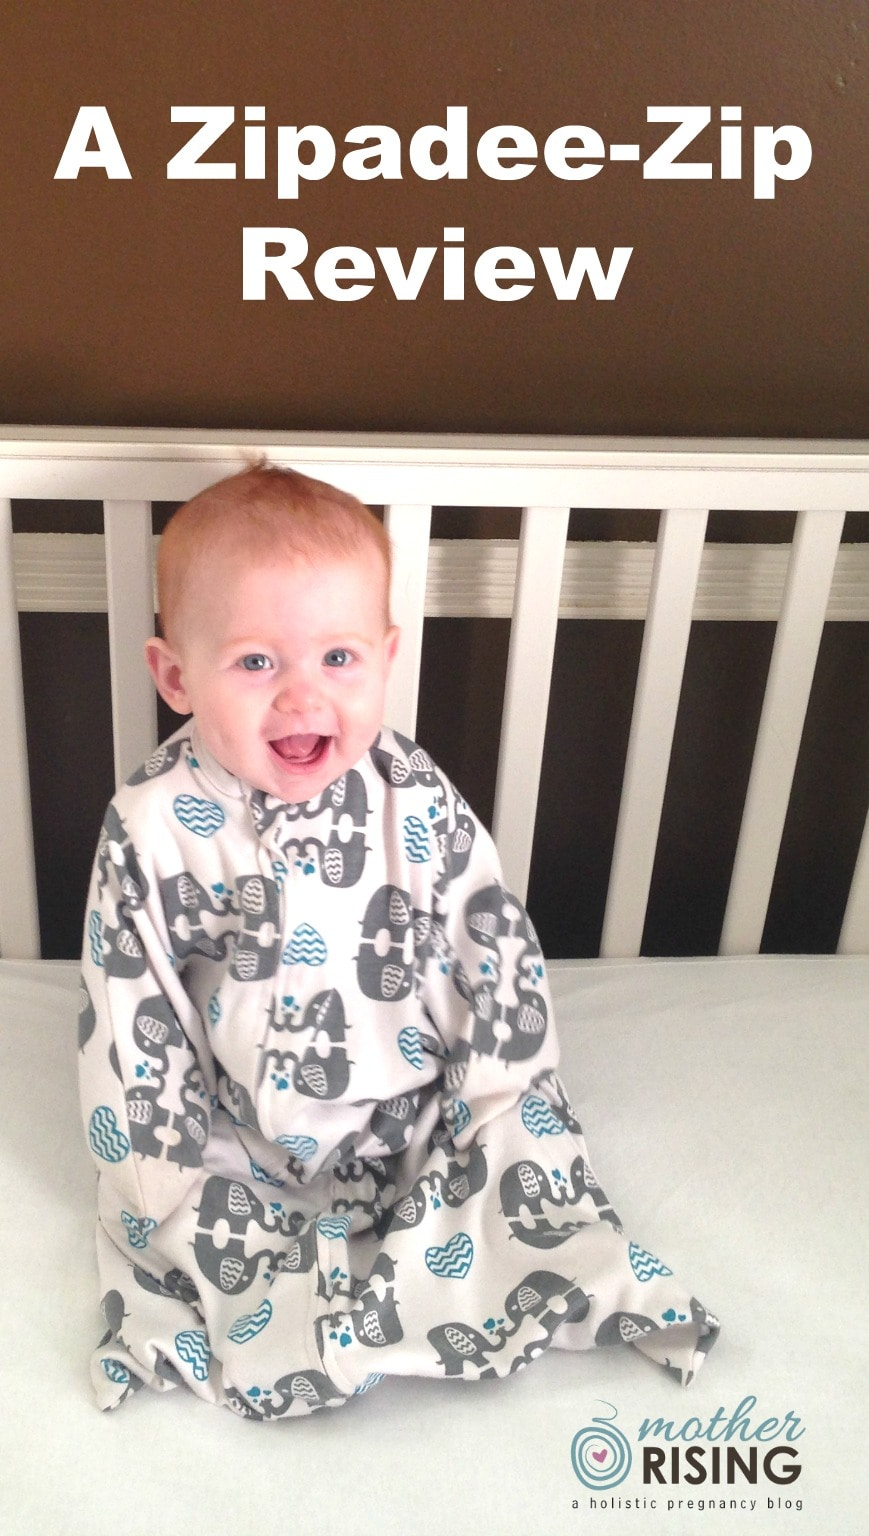 In this Zipadee-Zip Review I compare the Zipadee-Zip to the Baby Merlin's Magic Sleepsuit. Both products are designed to transition a baby out of a swaddle blanket.